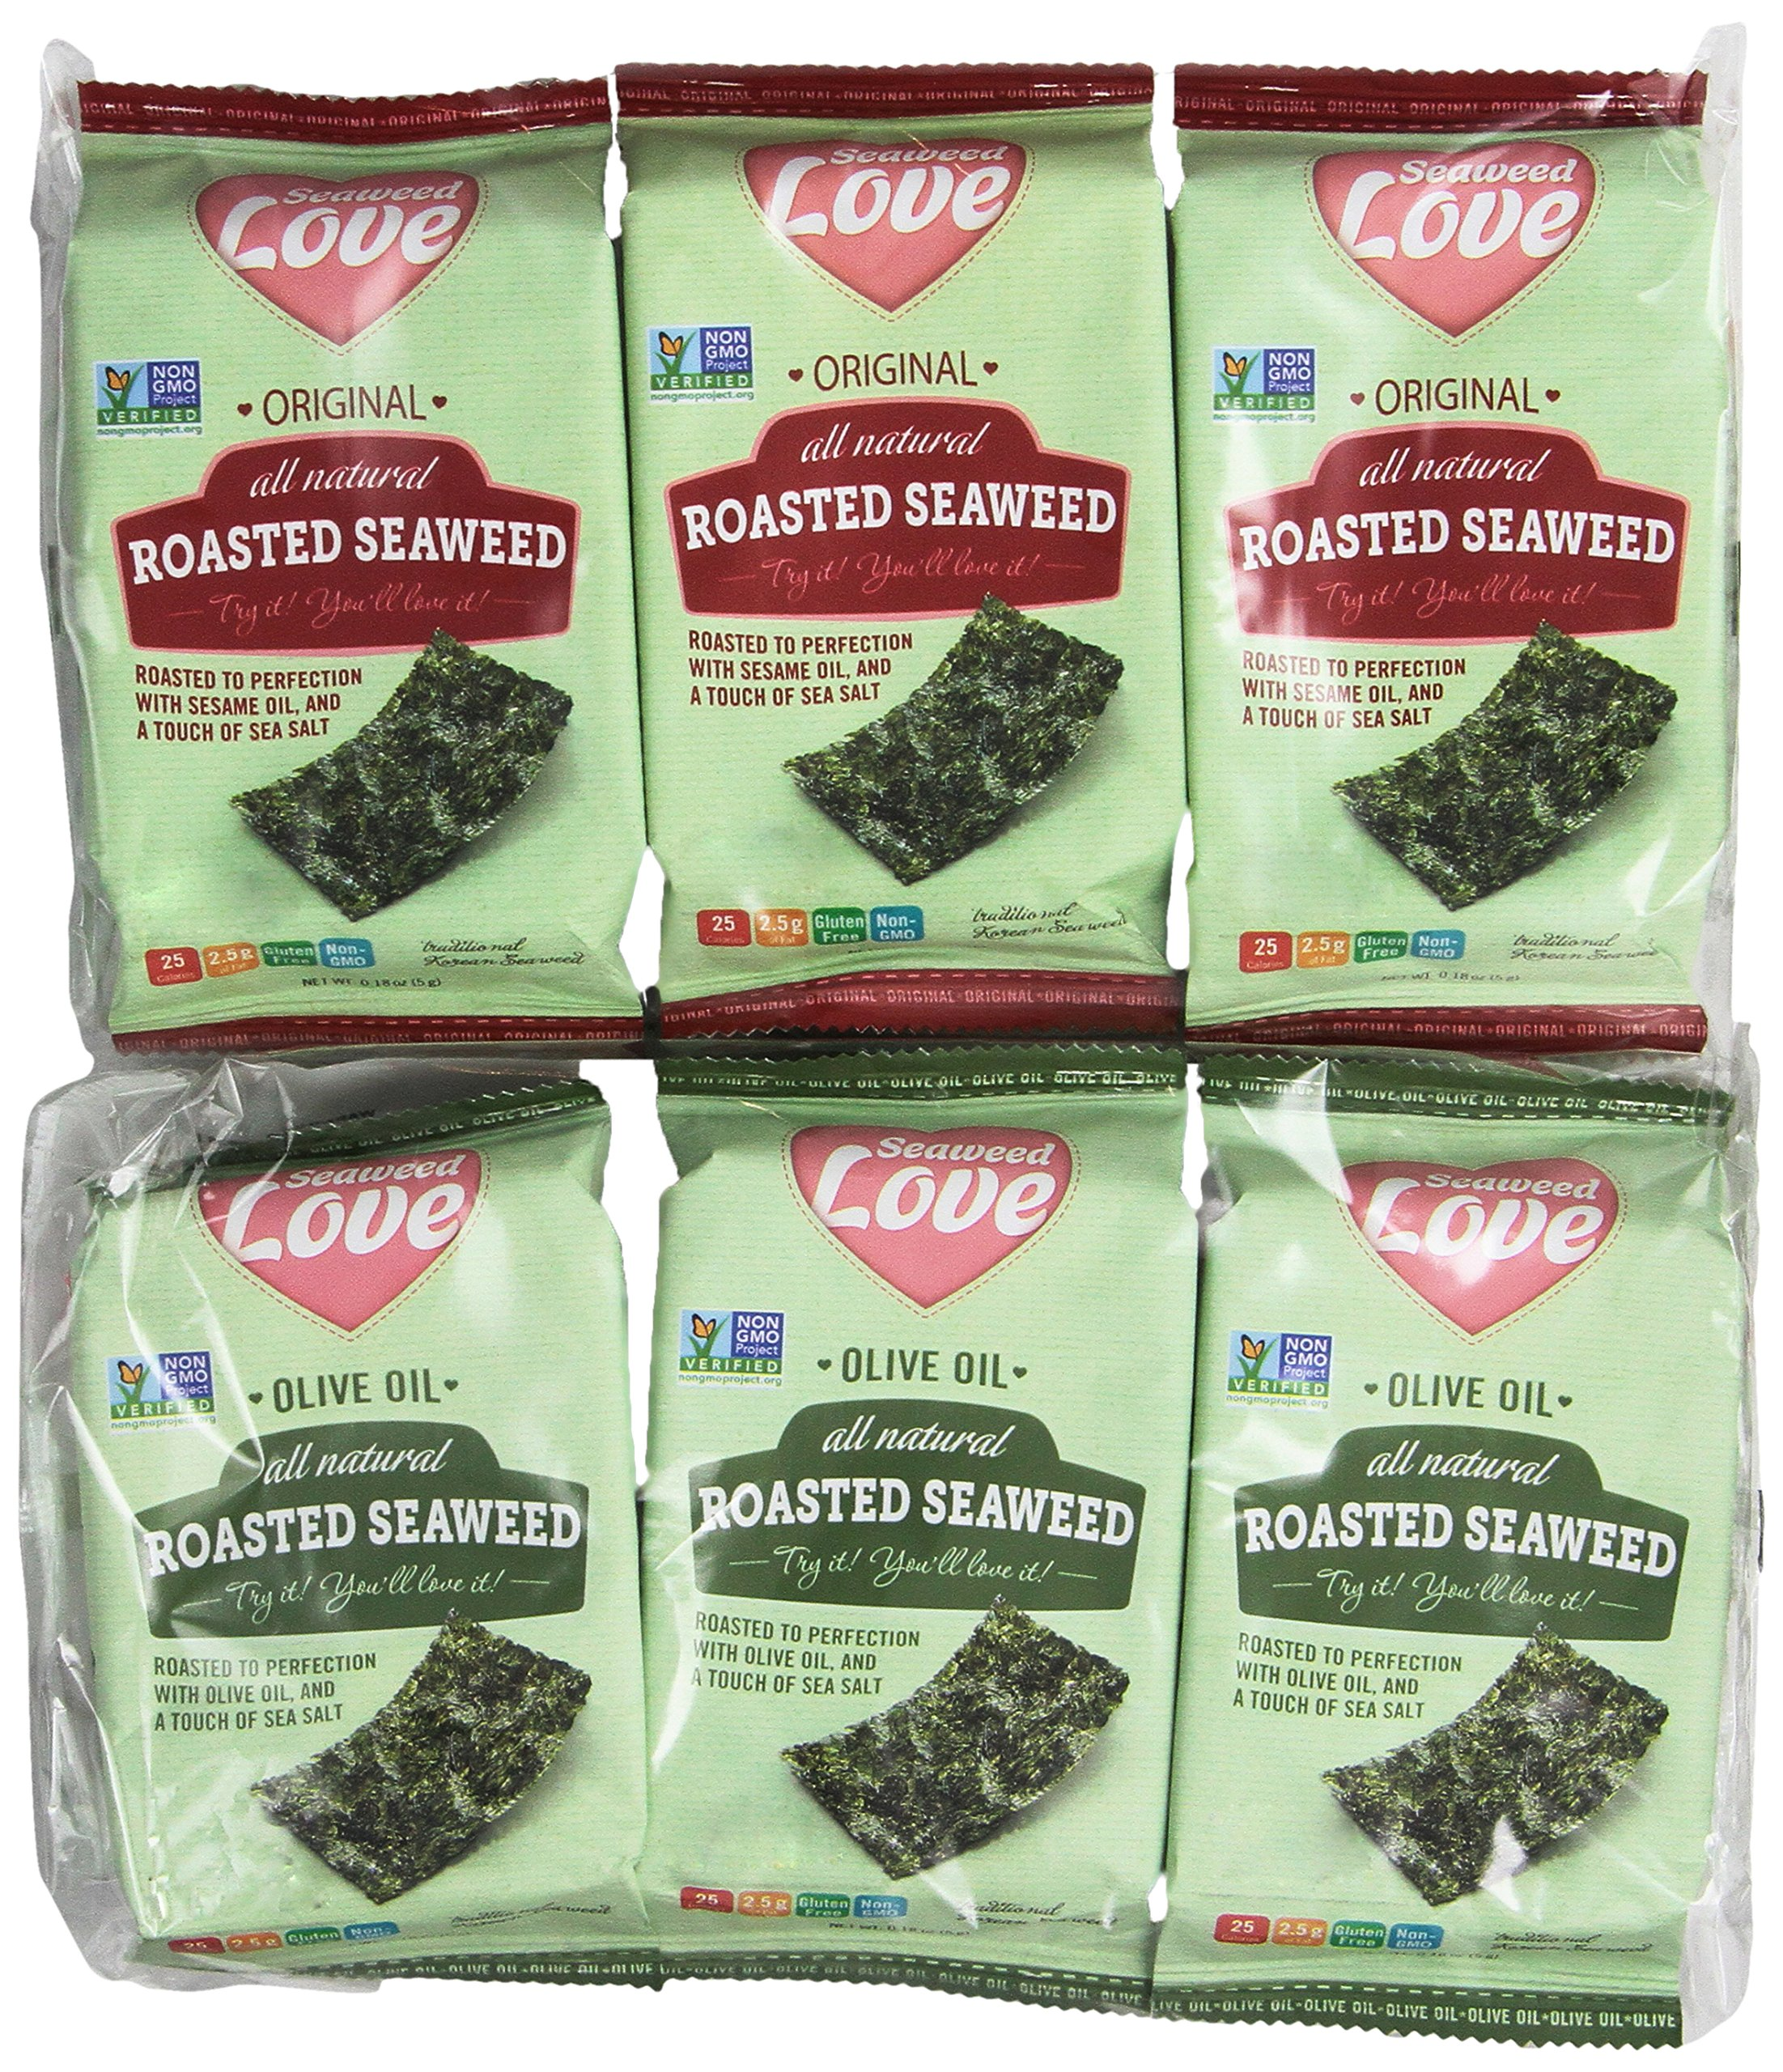 Seaweed Love All Natural Roasted Seaweed Variety Pack, Original and Olive Oil, 0.18 Ounce (Pack of 24) by Seaweed Love